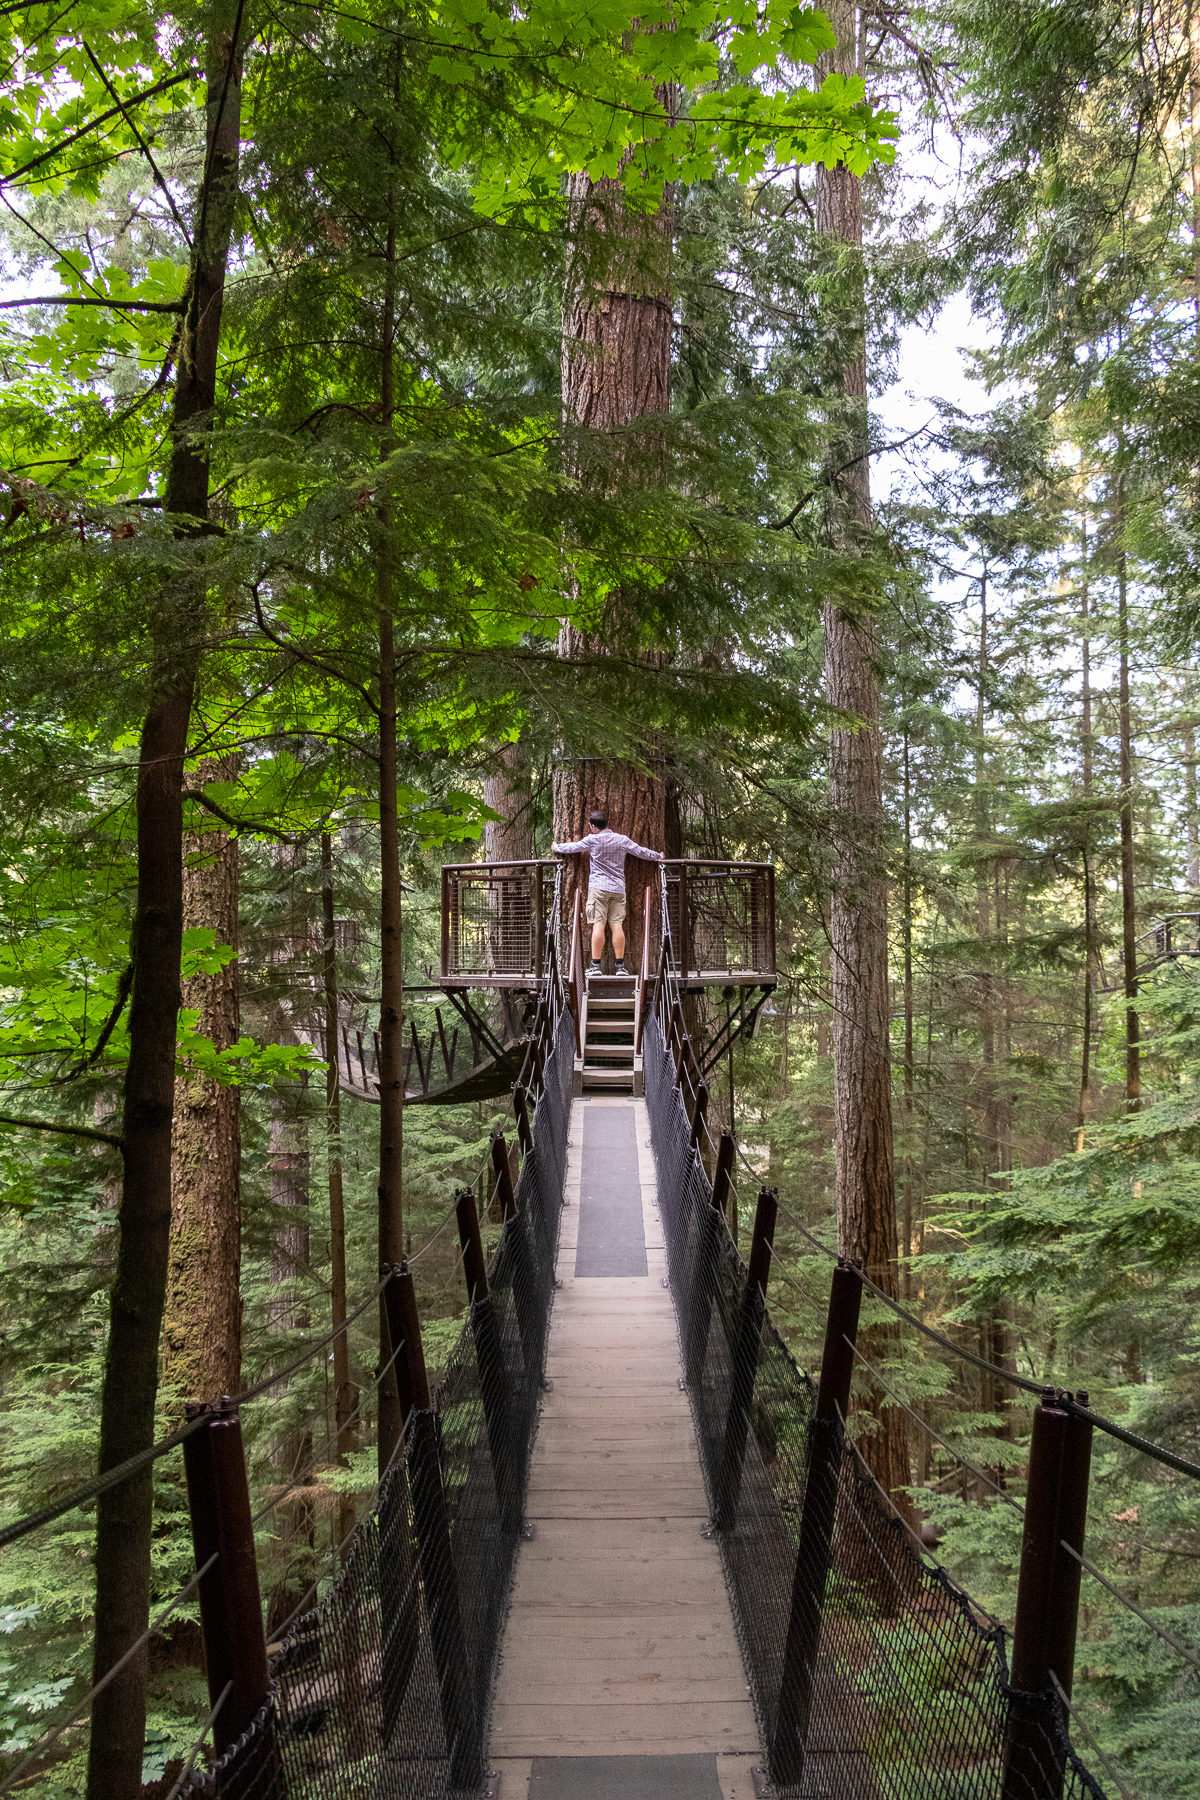 Between mighty Douglas firs you walk at about 30 meters above ground and get in touch with nature - like Ben.